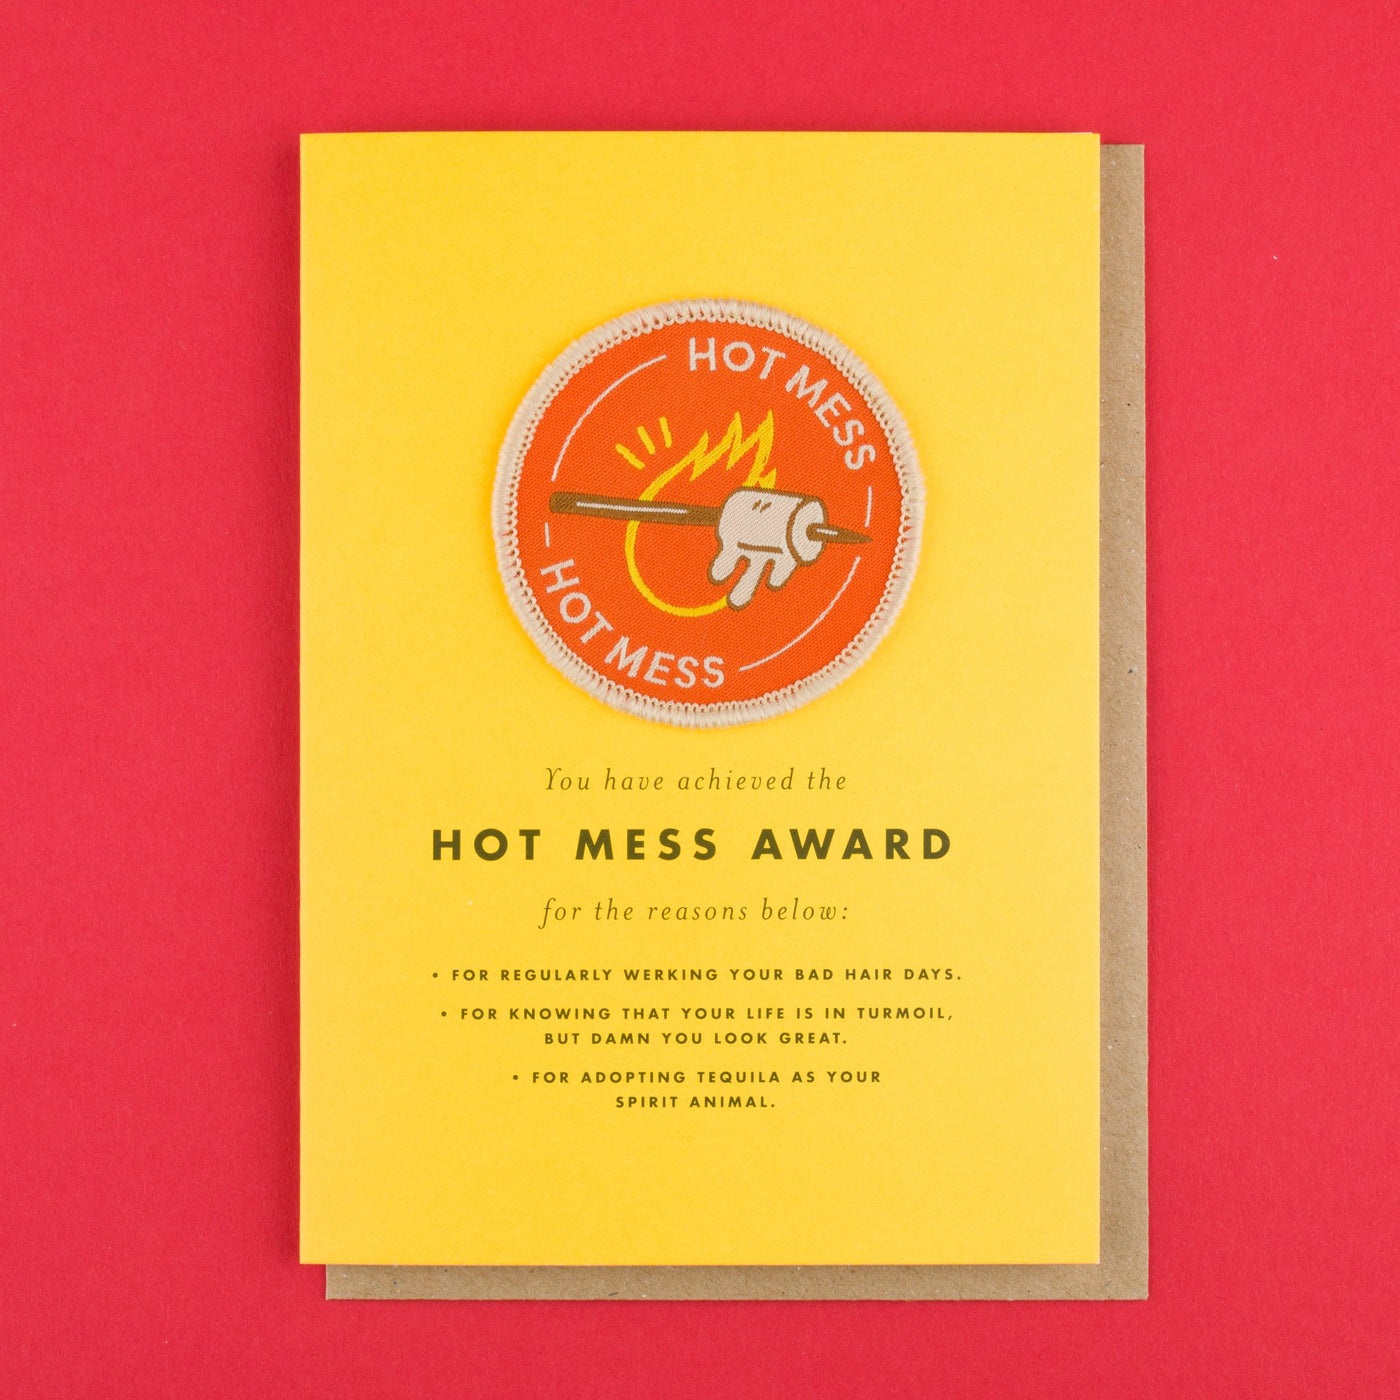 Iron on Patch Card 'Hot Mess' Award by Ohh Deer